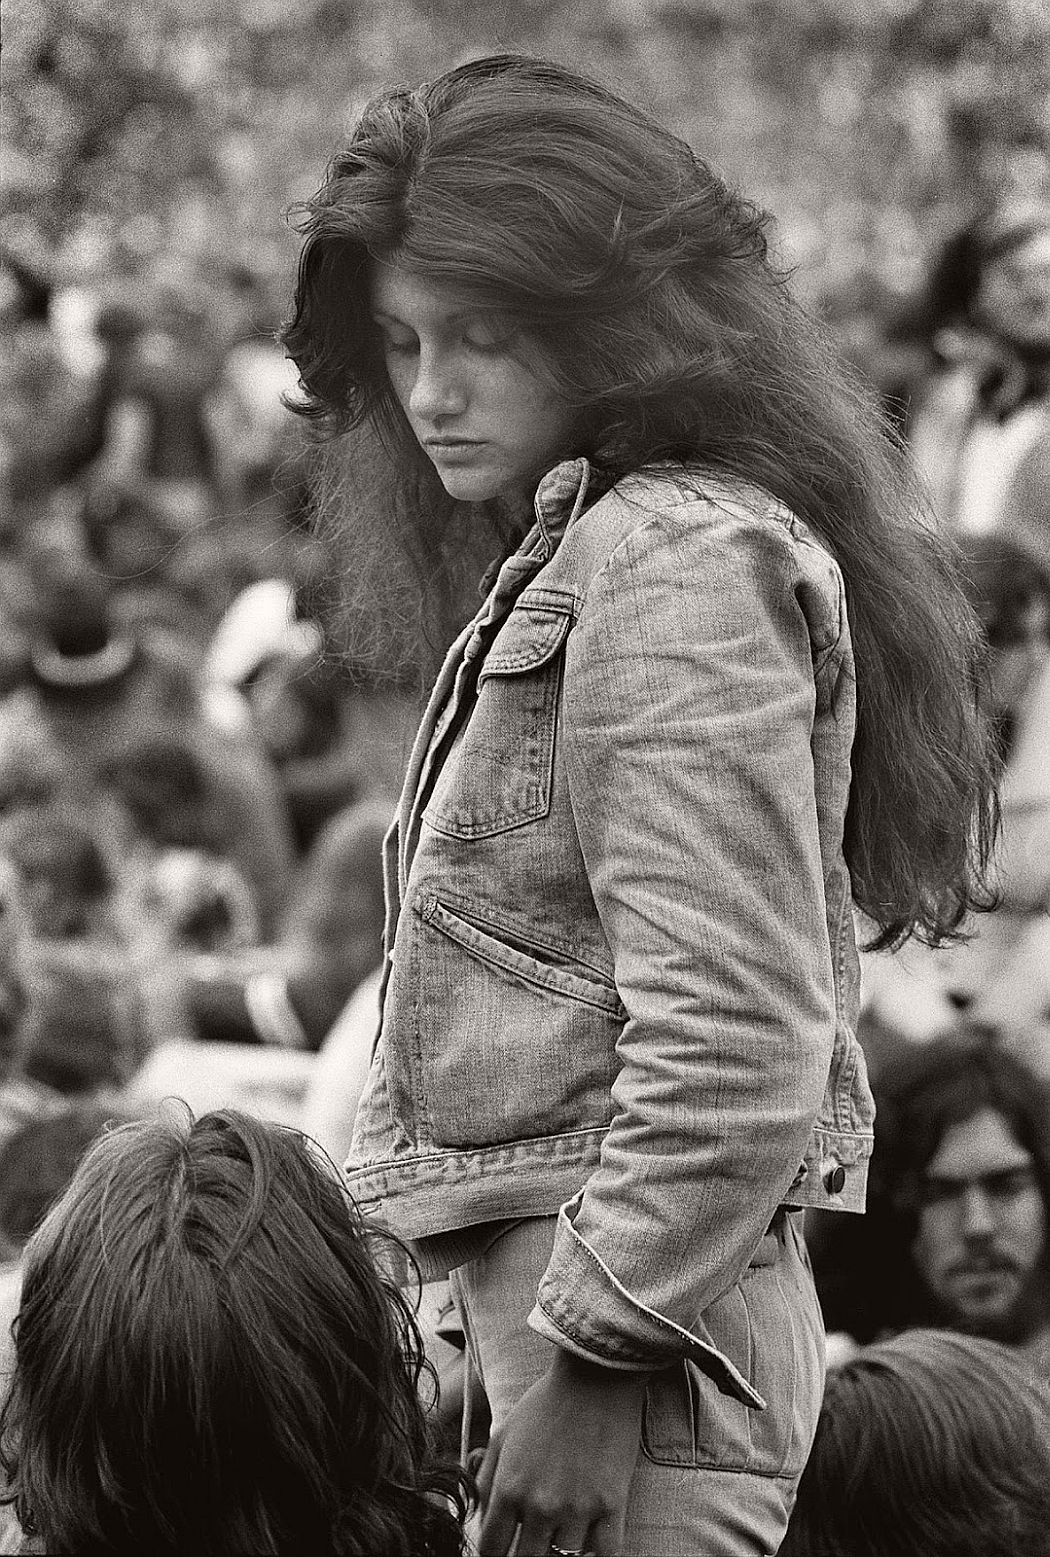 vintage-bw-photos-of-rolling-stones-fans-by-joseph-szabo-1978-02